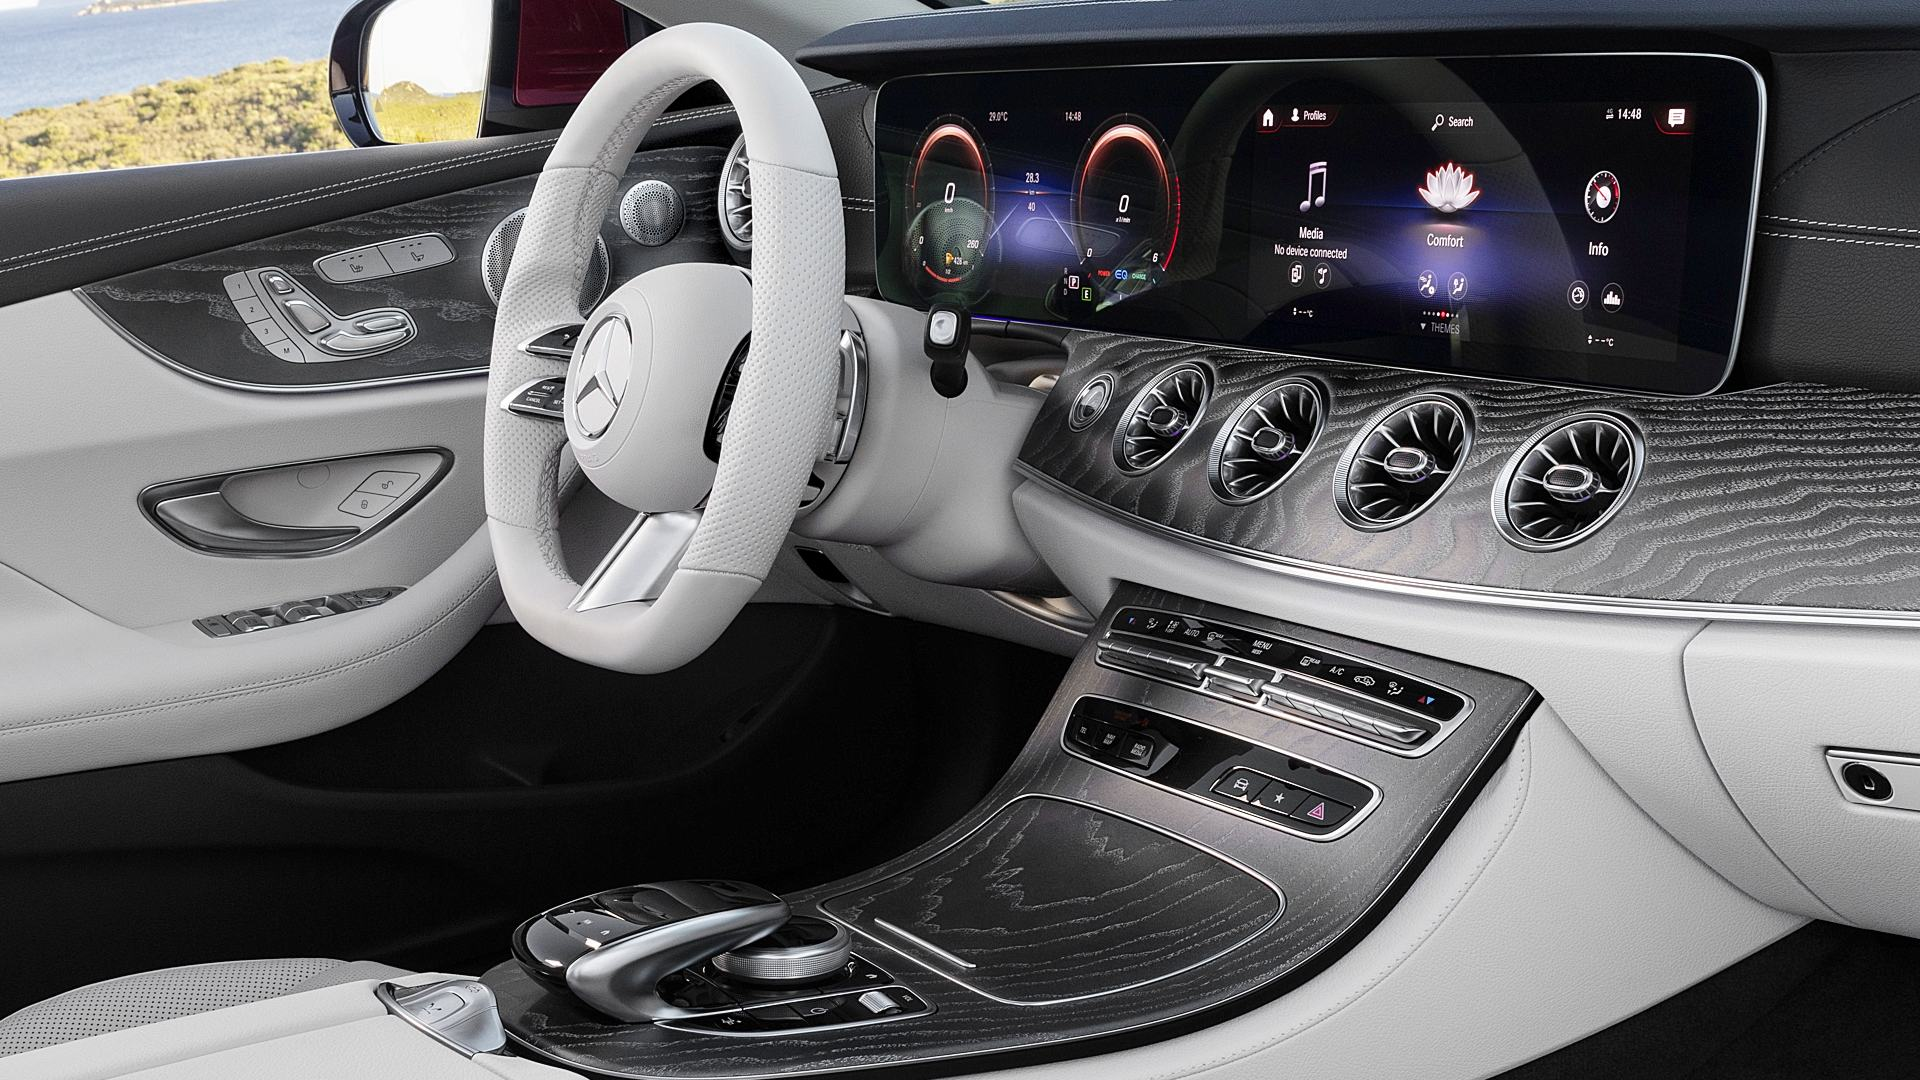 2021 Mercedes Benz E450 4Matic Interior